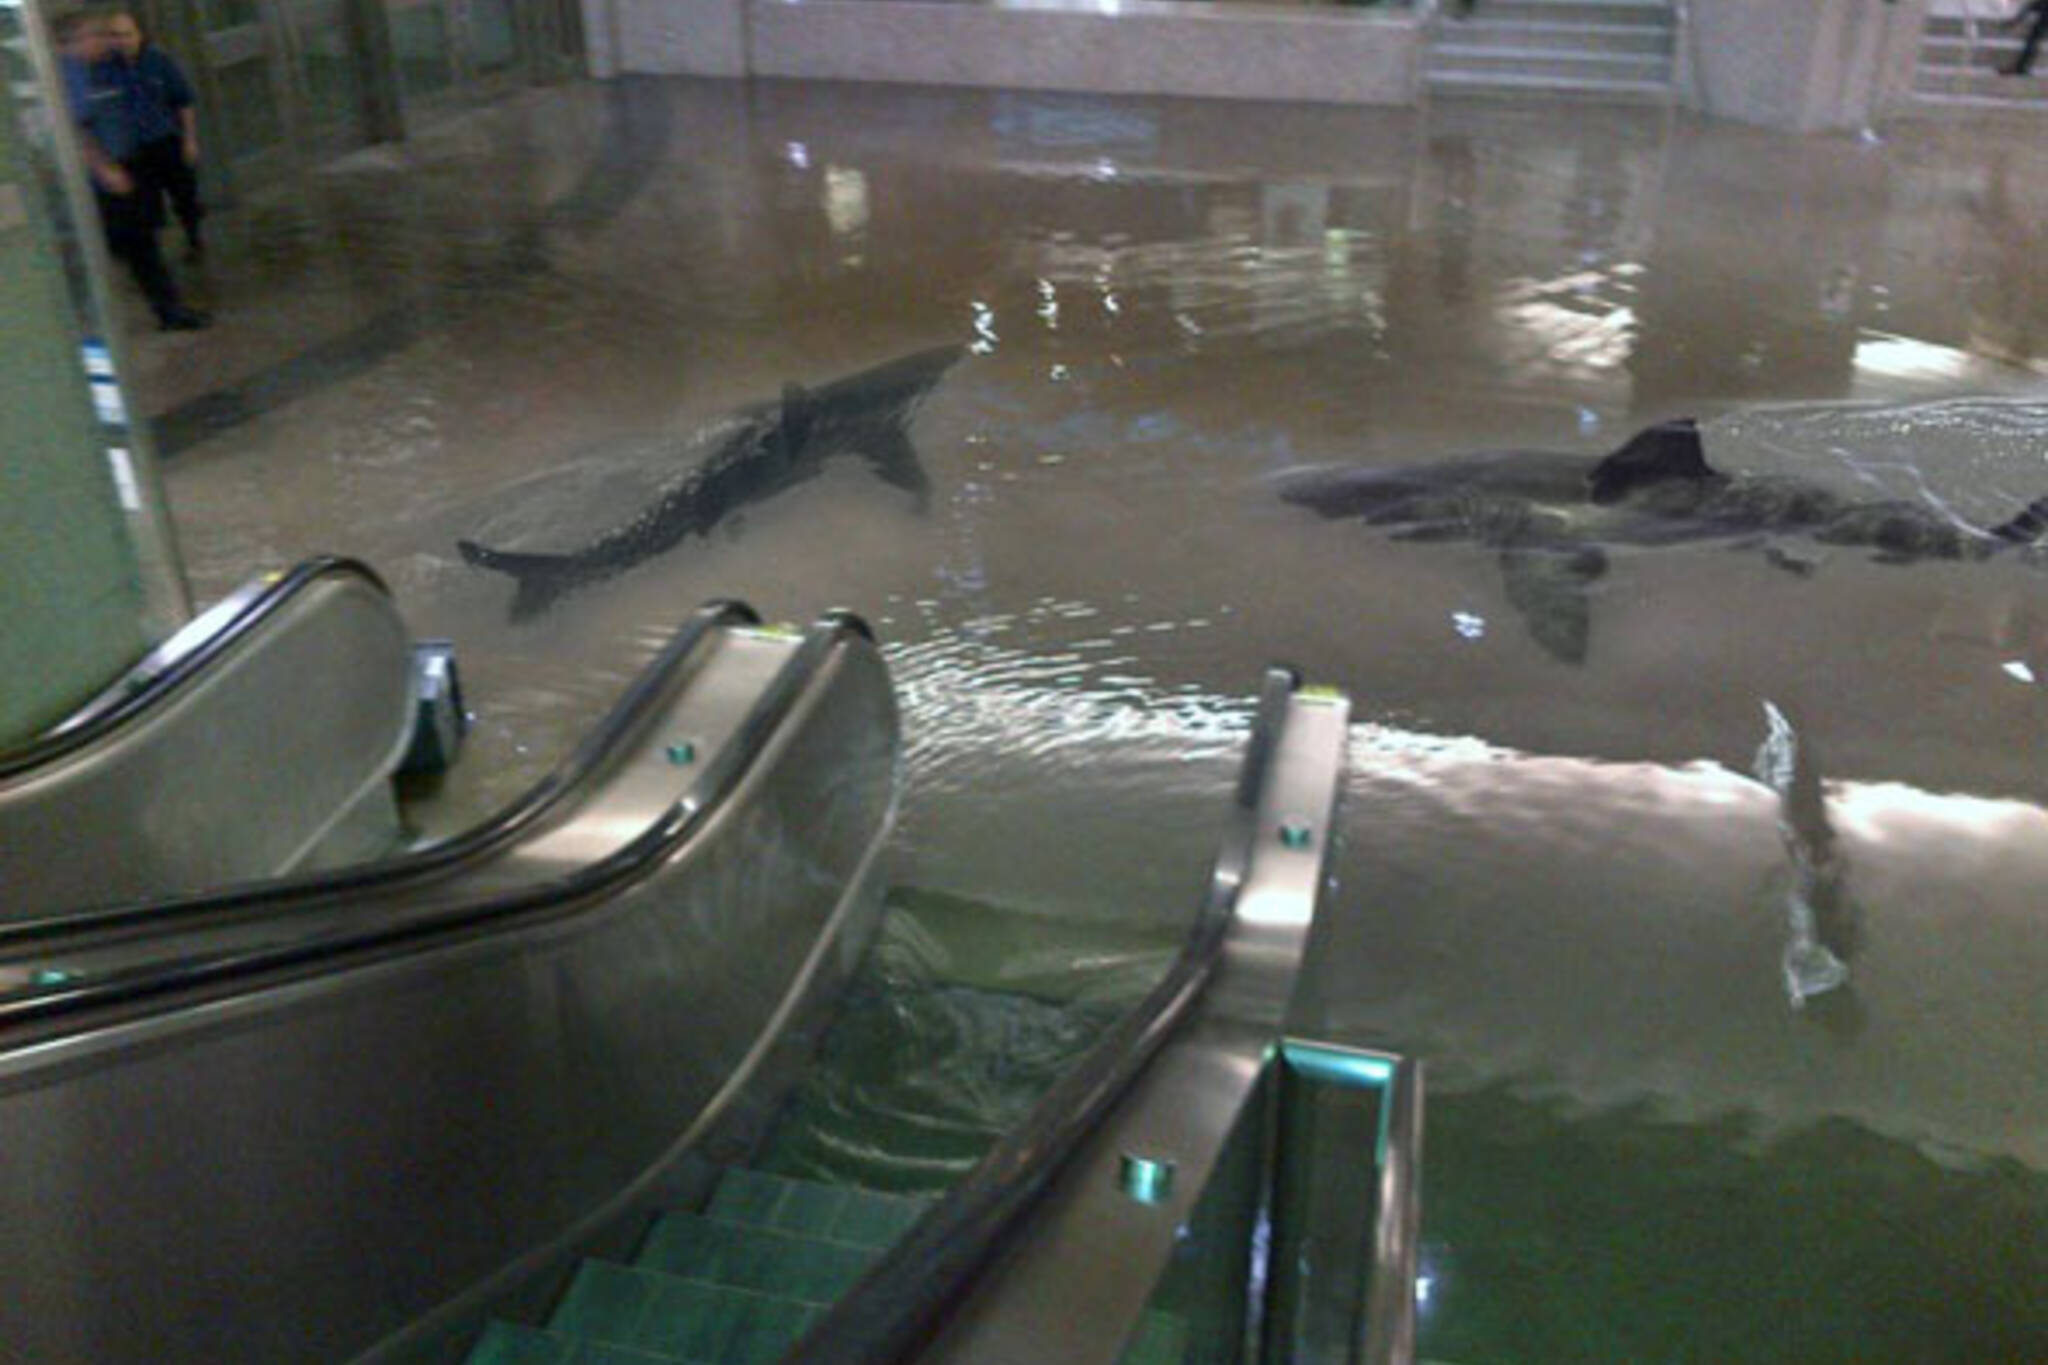 Union Station flood sharks meme